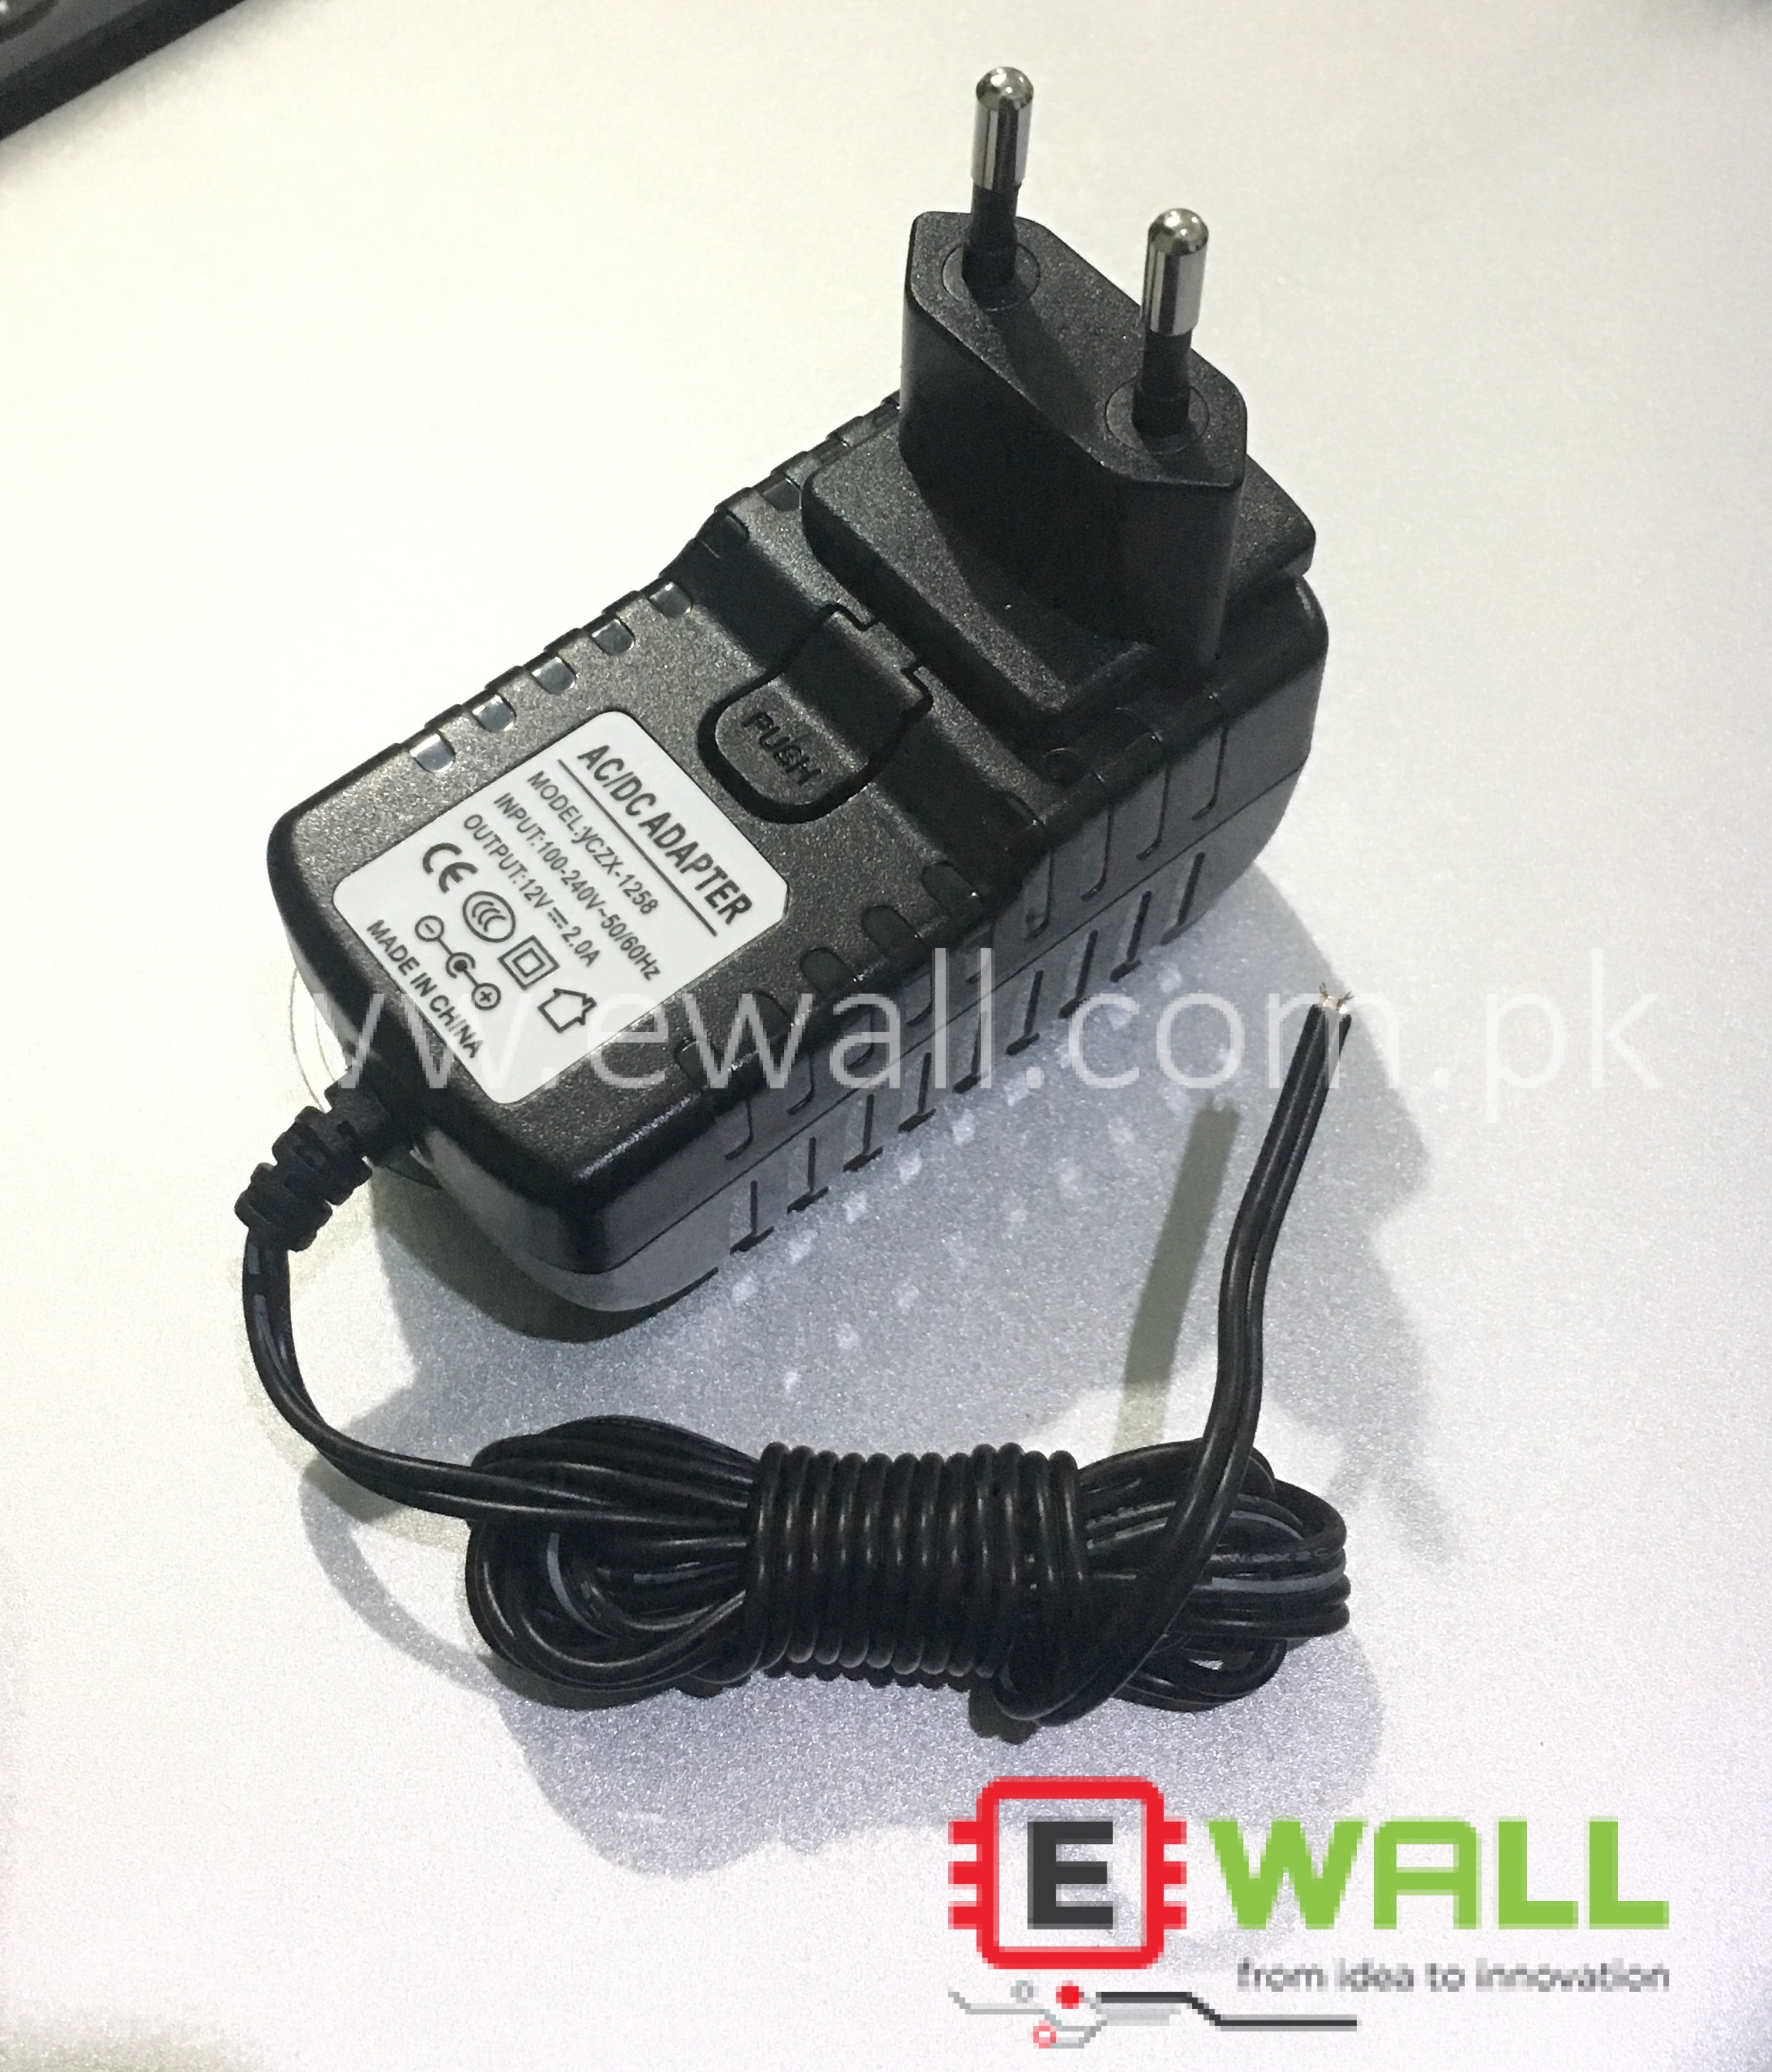 2A 12V AC 220V to DC Adapter (Highest Quality) Original 2A Adapter